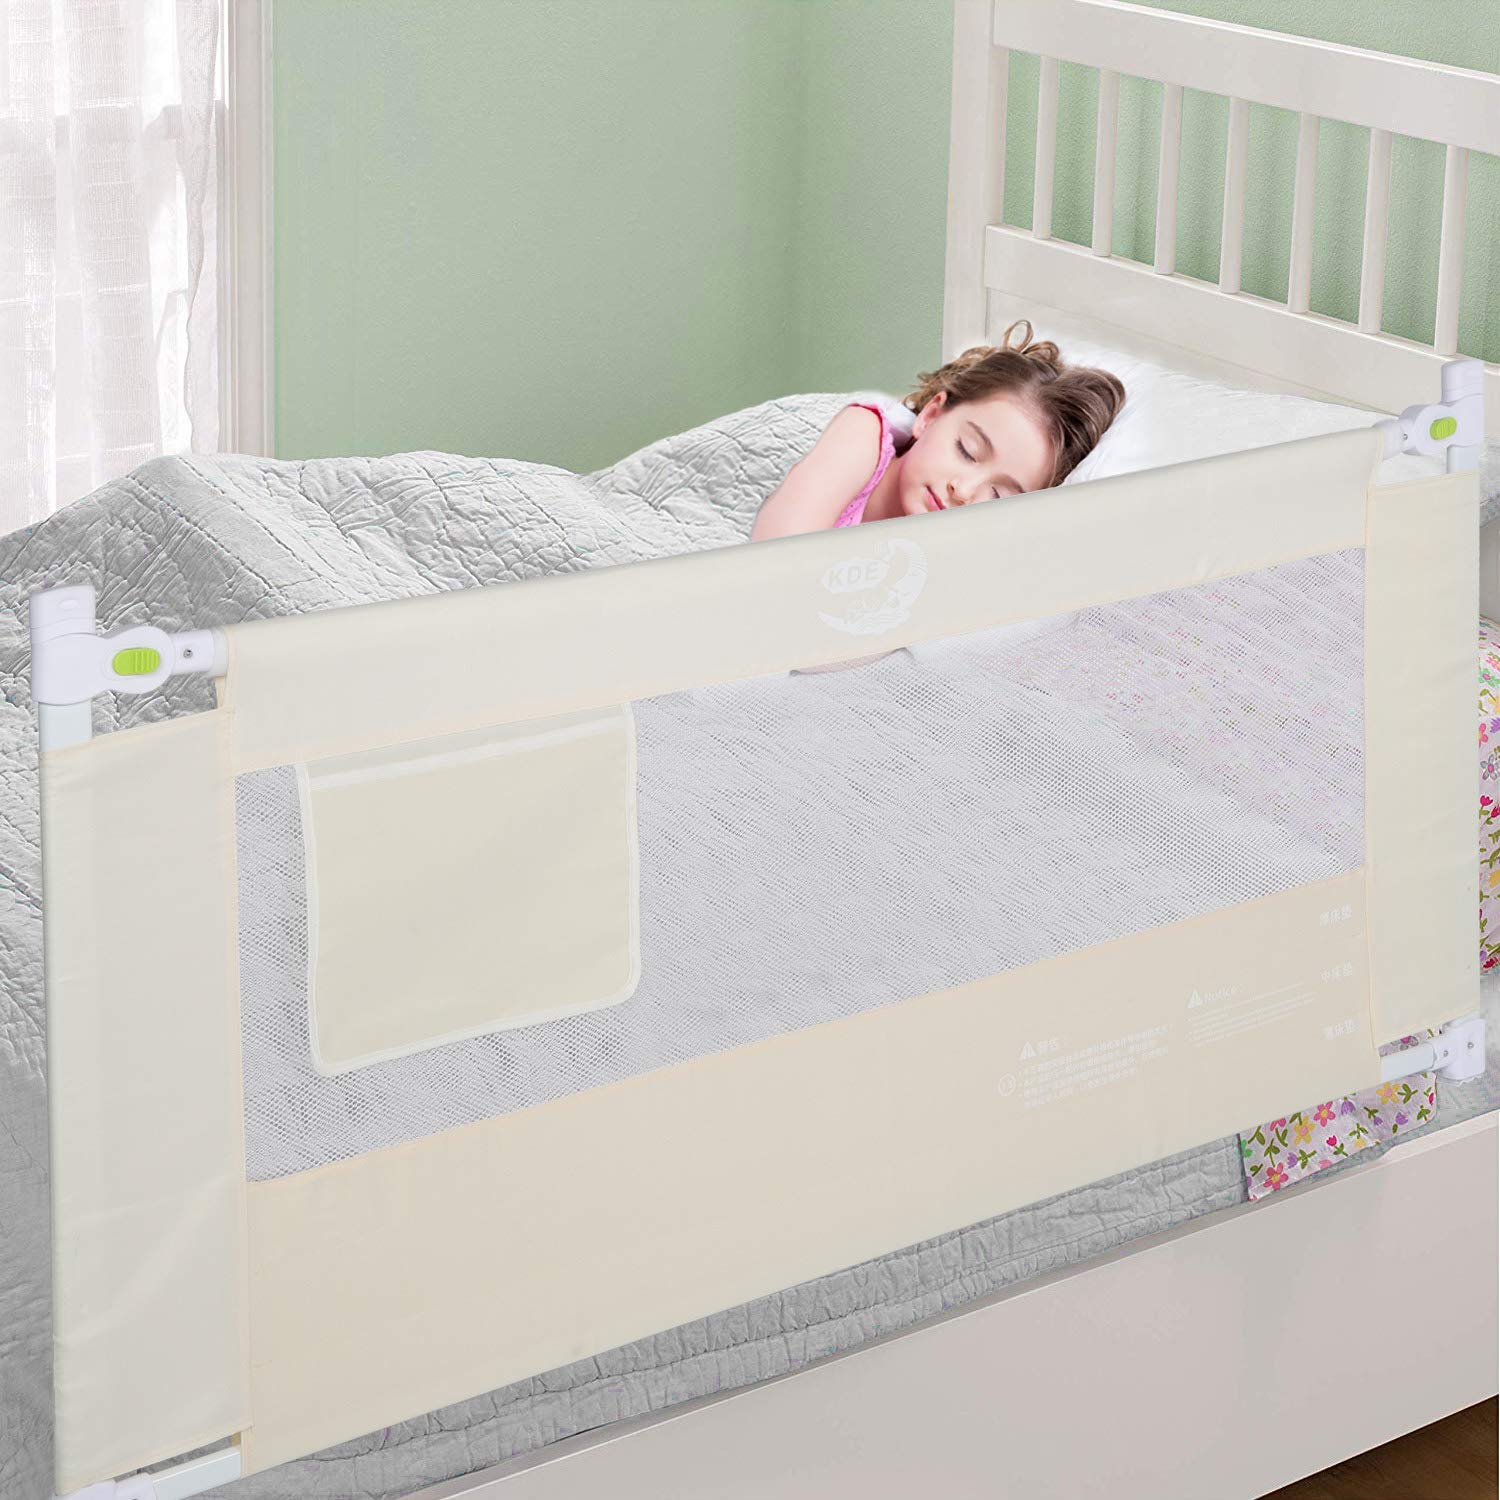 Bed Rail for Toddler, Foldable Baby Kids Safety Bedrail 59'' Extra Long Vertical Down Bed Guardrail for Twin Bed, King Bed, Queen Size Bed - 1 Piece